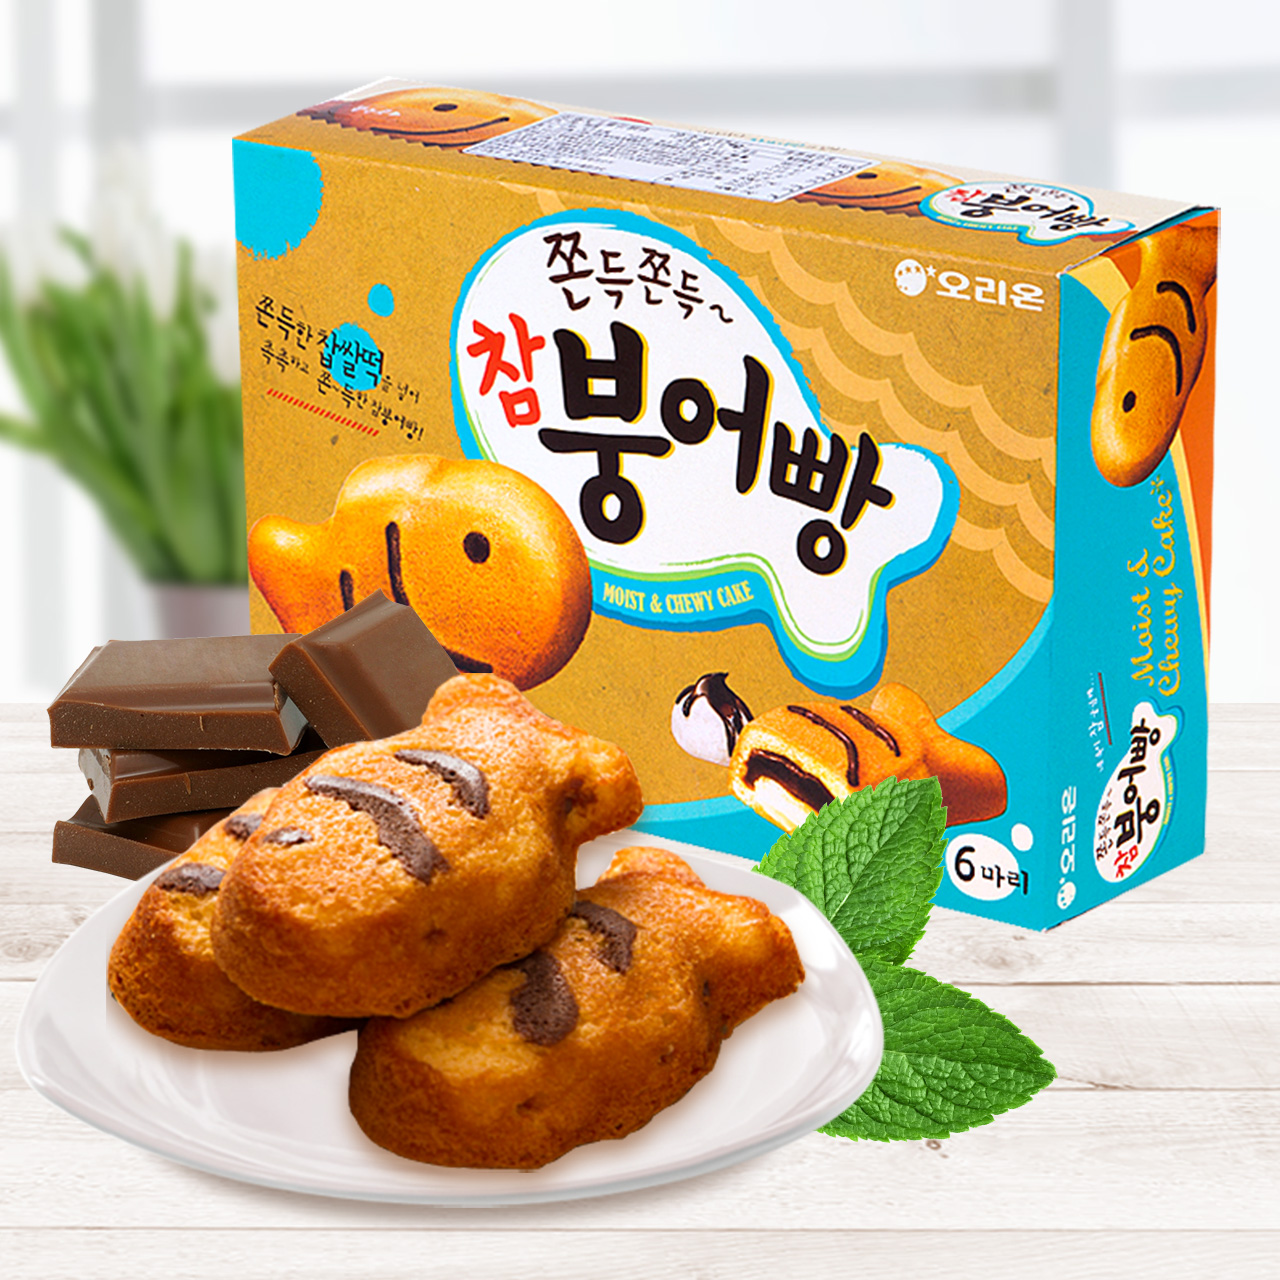 South korean imports of leisure zero food orion orion children playing fish 174g * 3 box big box